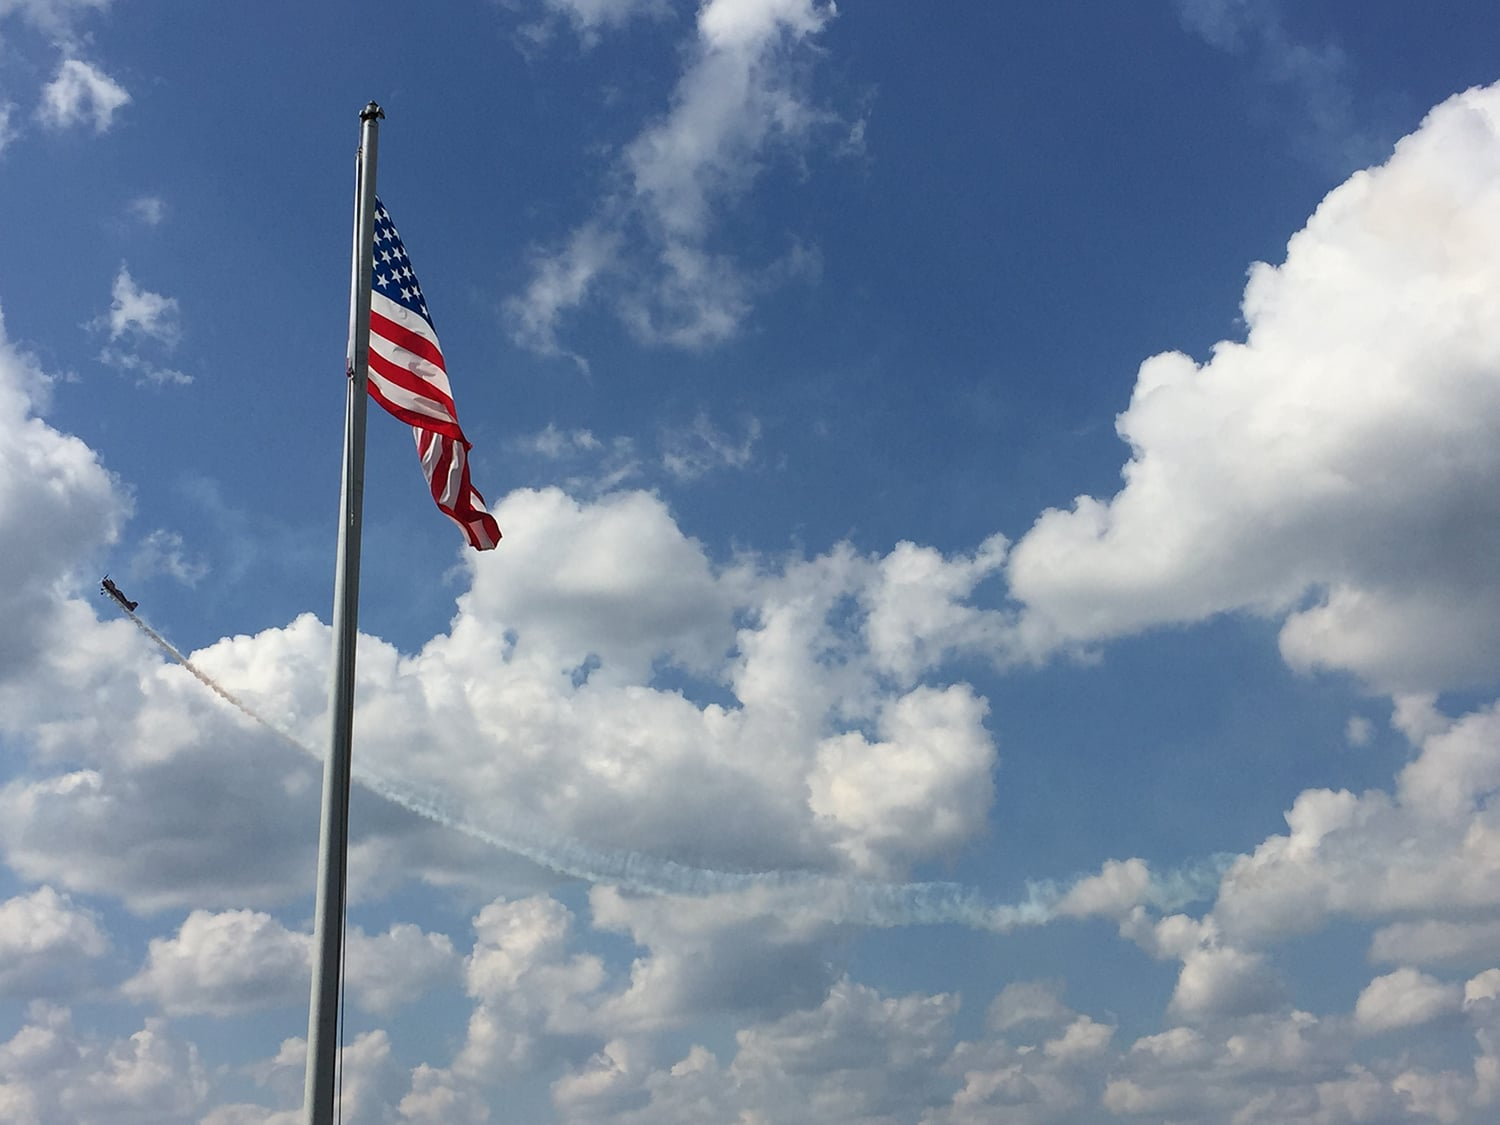 Airport American flag - city of natchitoches